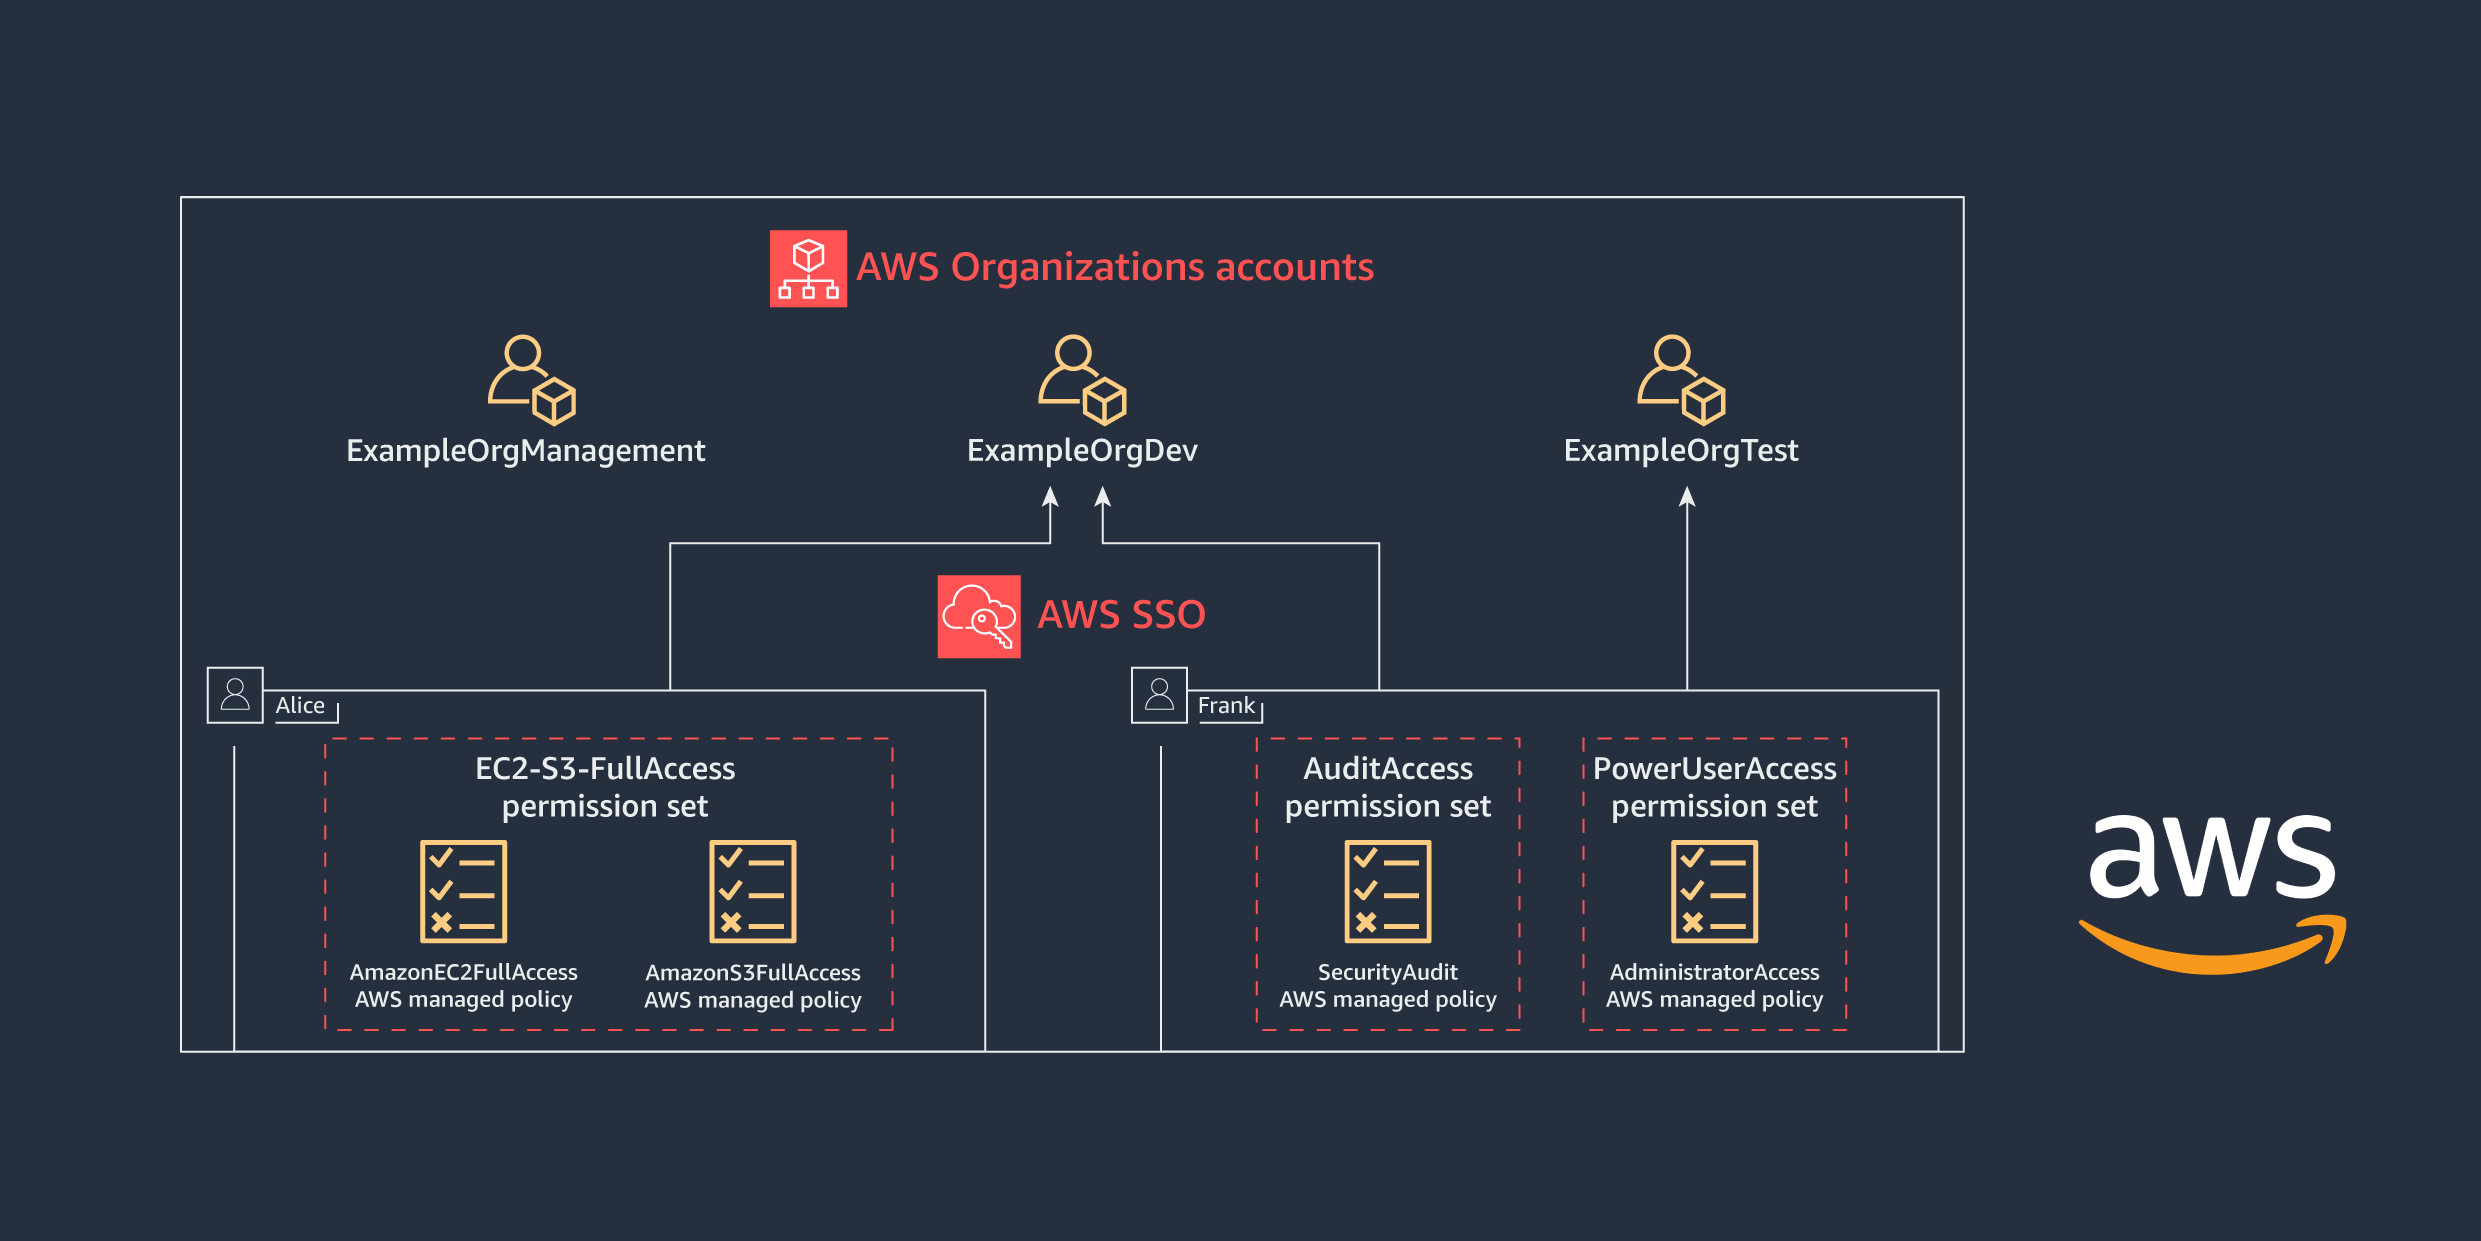 Figure 2: AWS Organizations accounts access for Alice and Frank